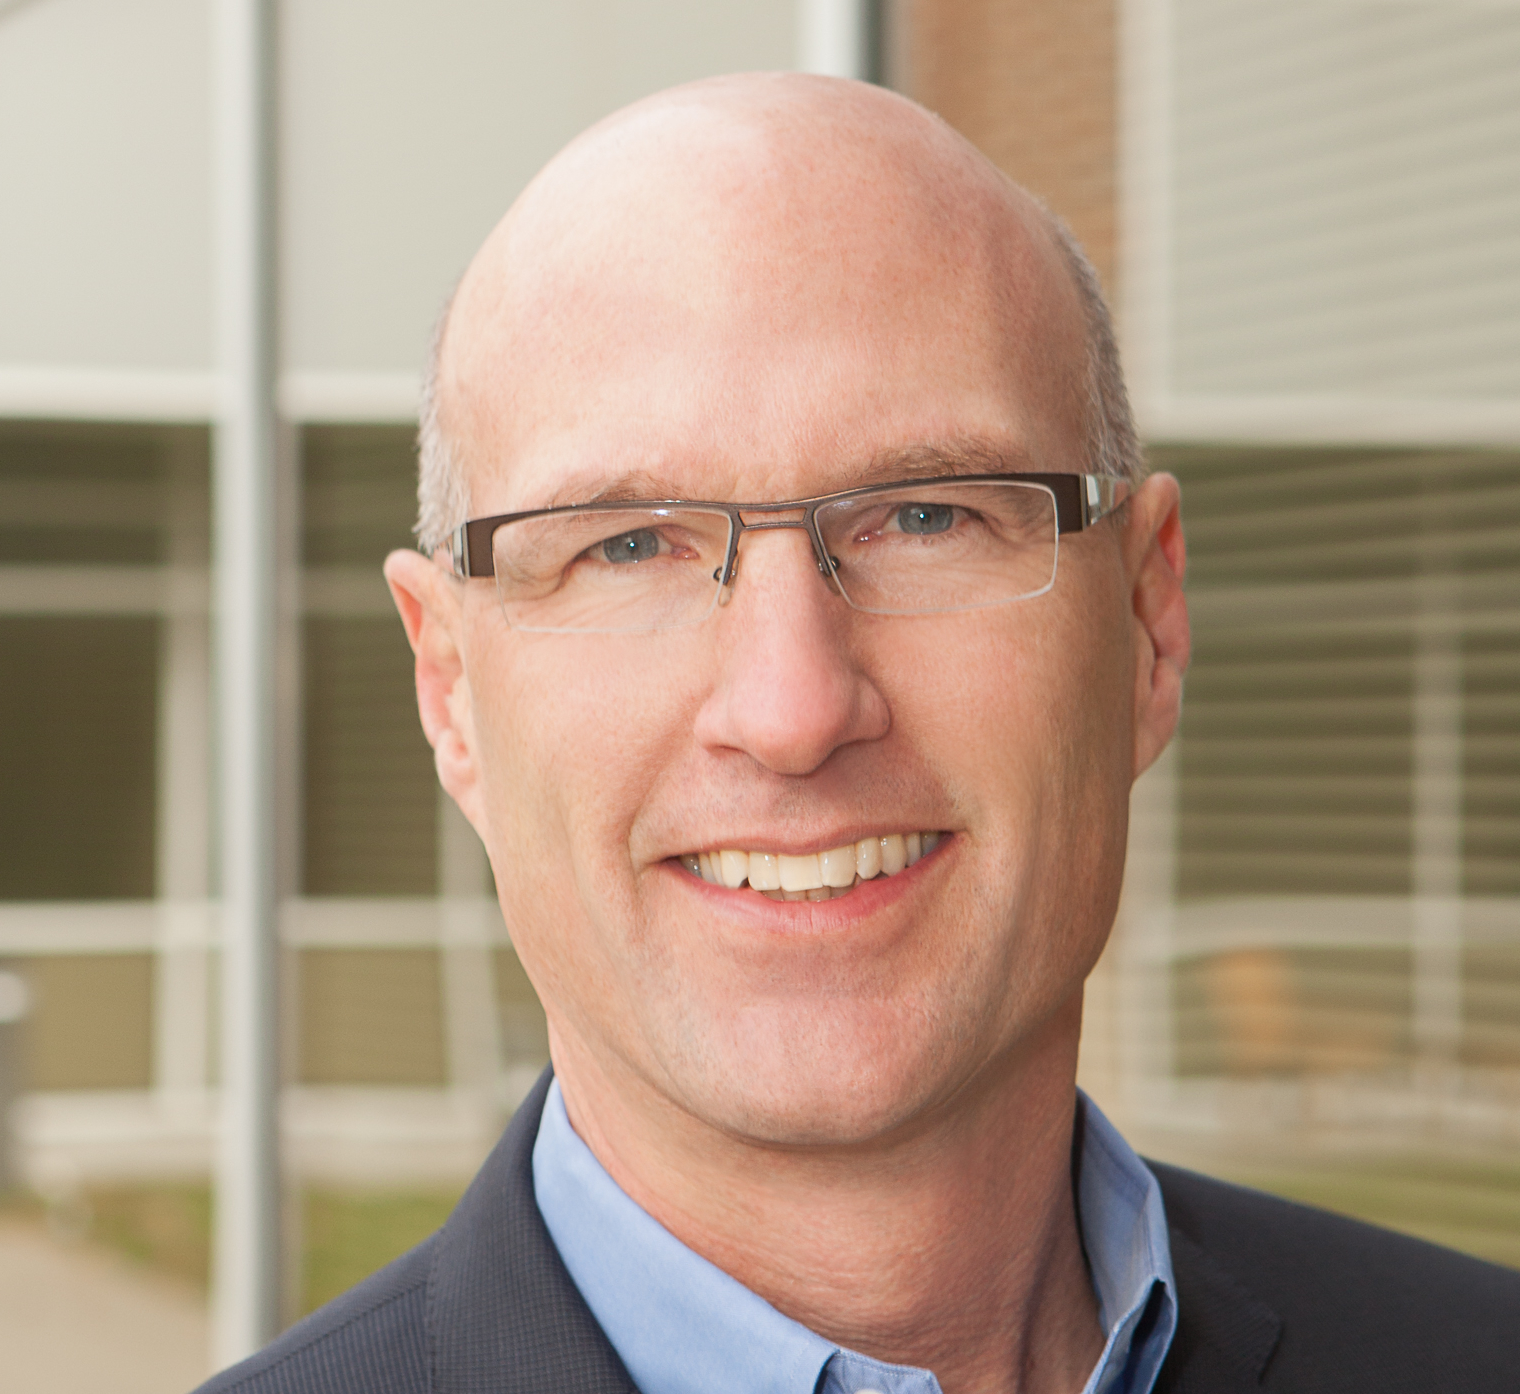 Dave Menninger, head of business development and strategy at Pivotal